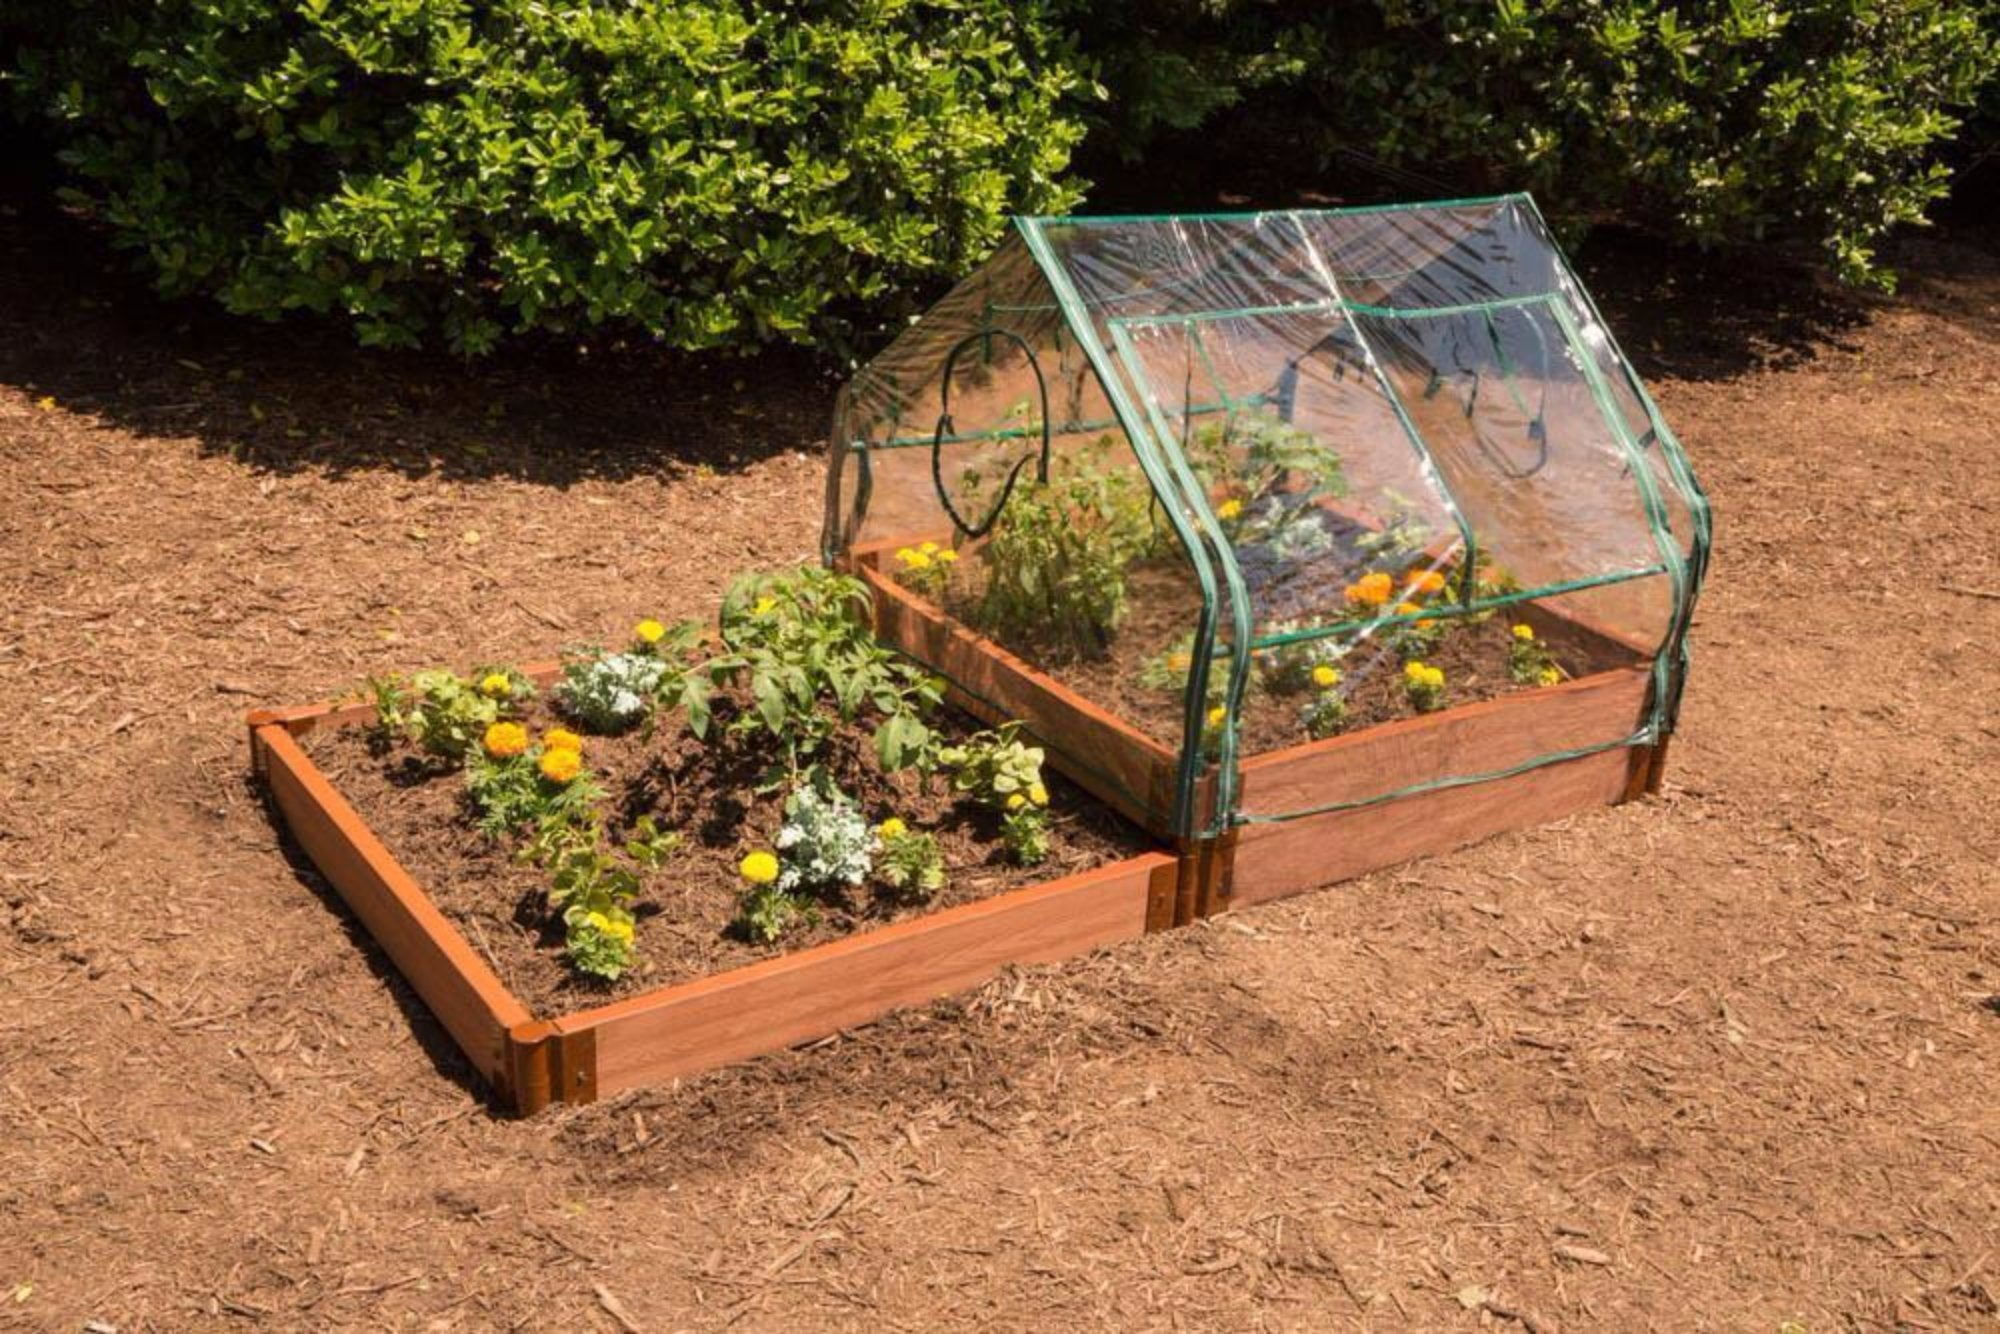 Greenhouse Kit - Frame It All PVC 4\' X 4\' X 36\